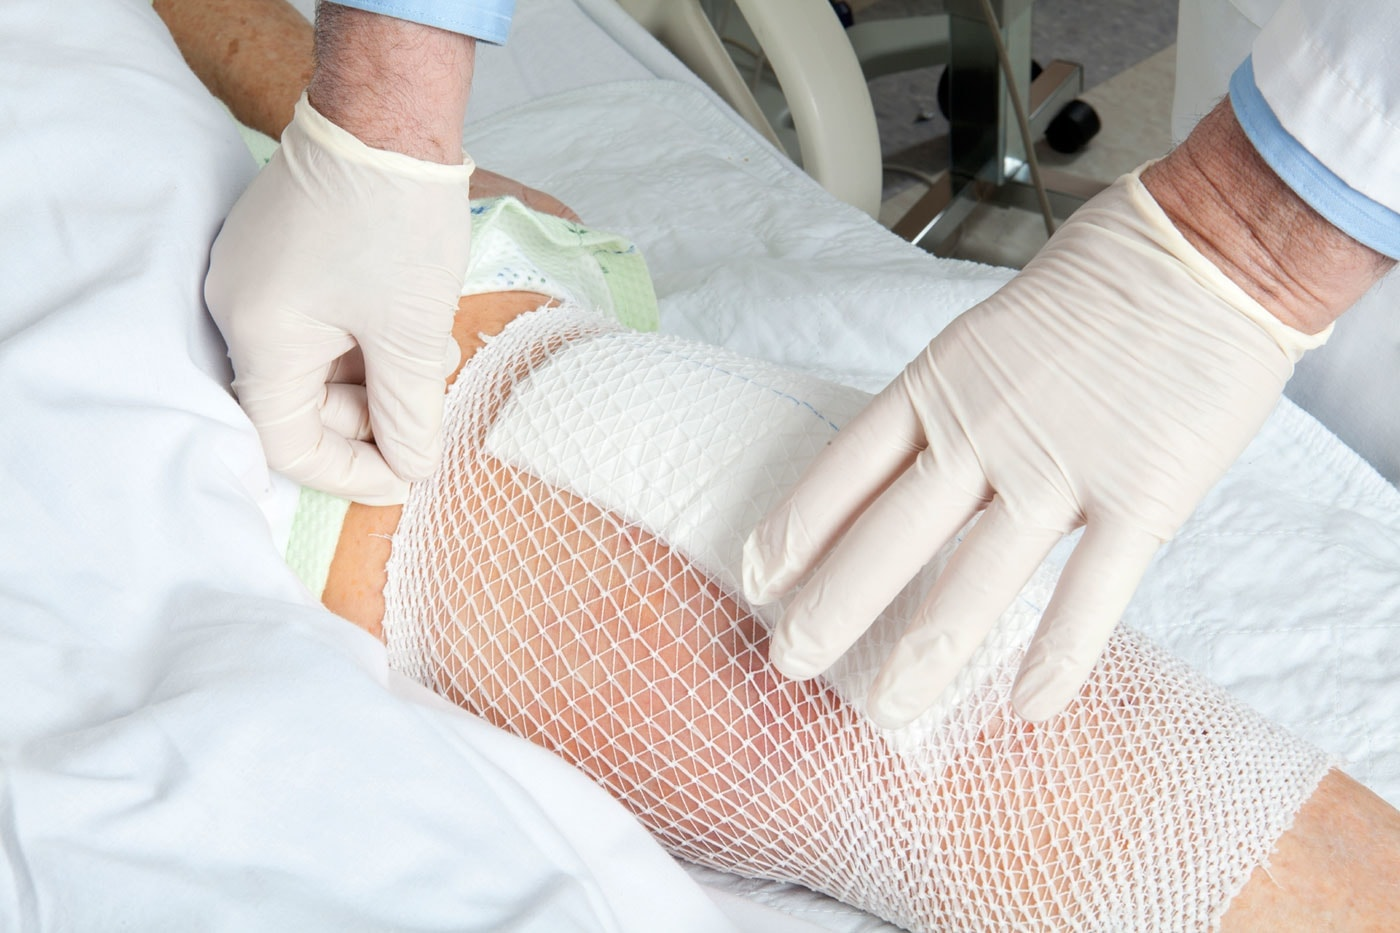 Wound Care & Dressing Photo